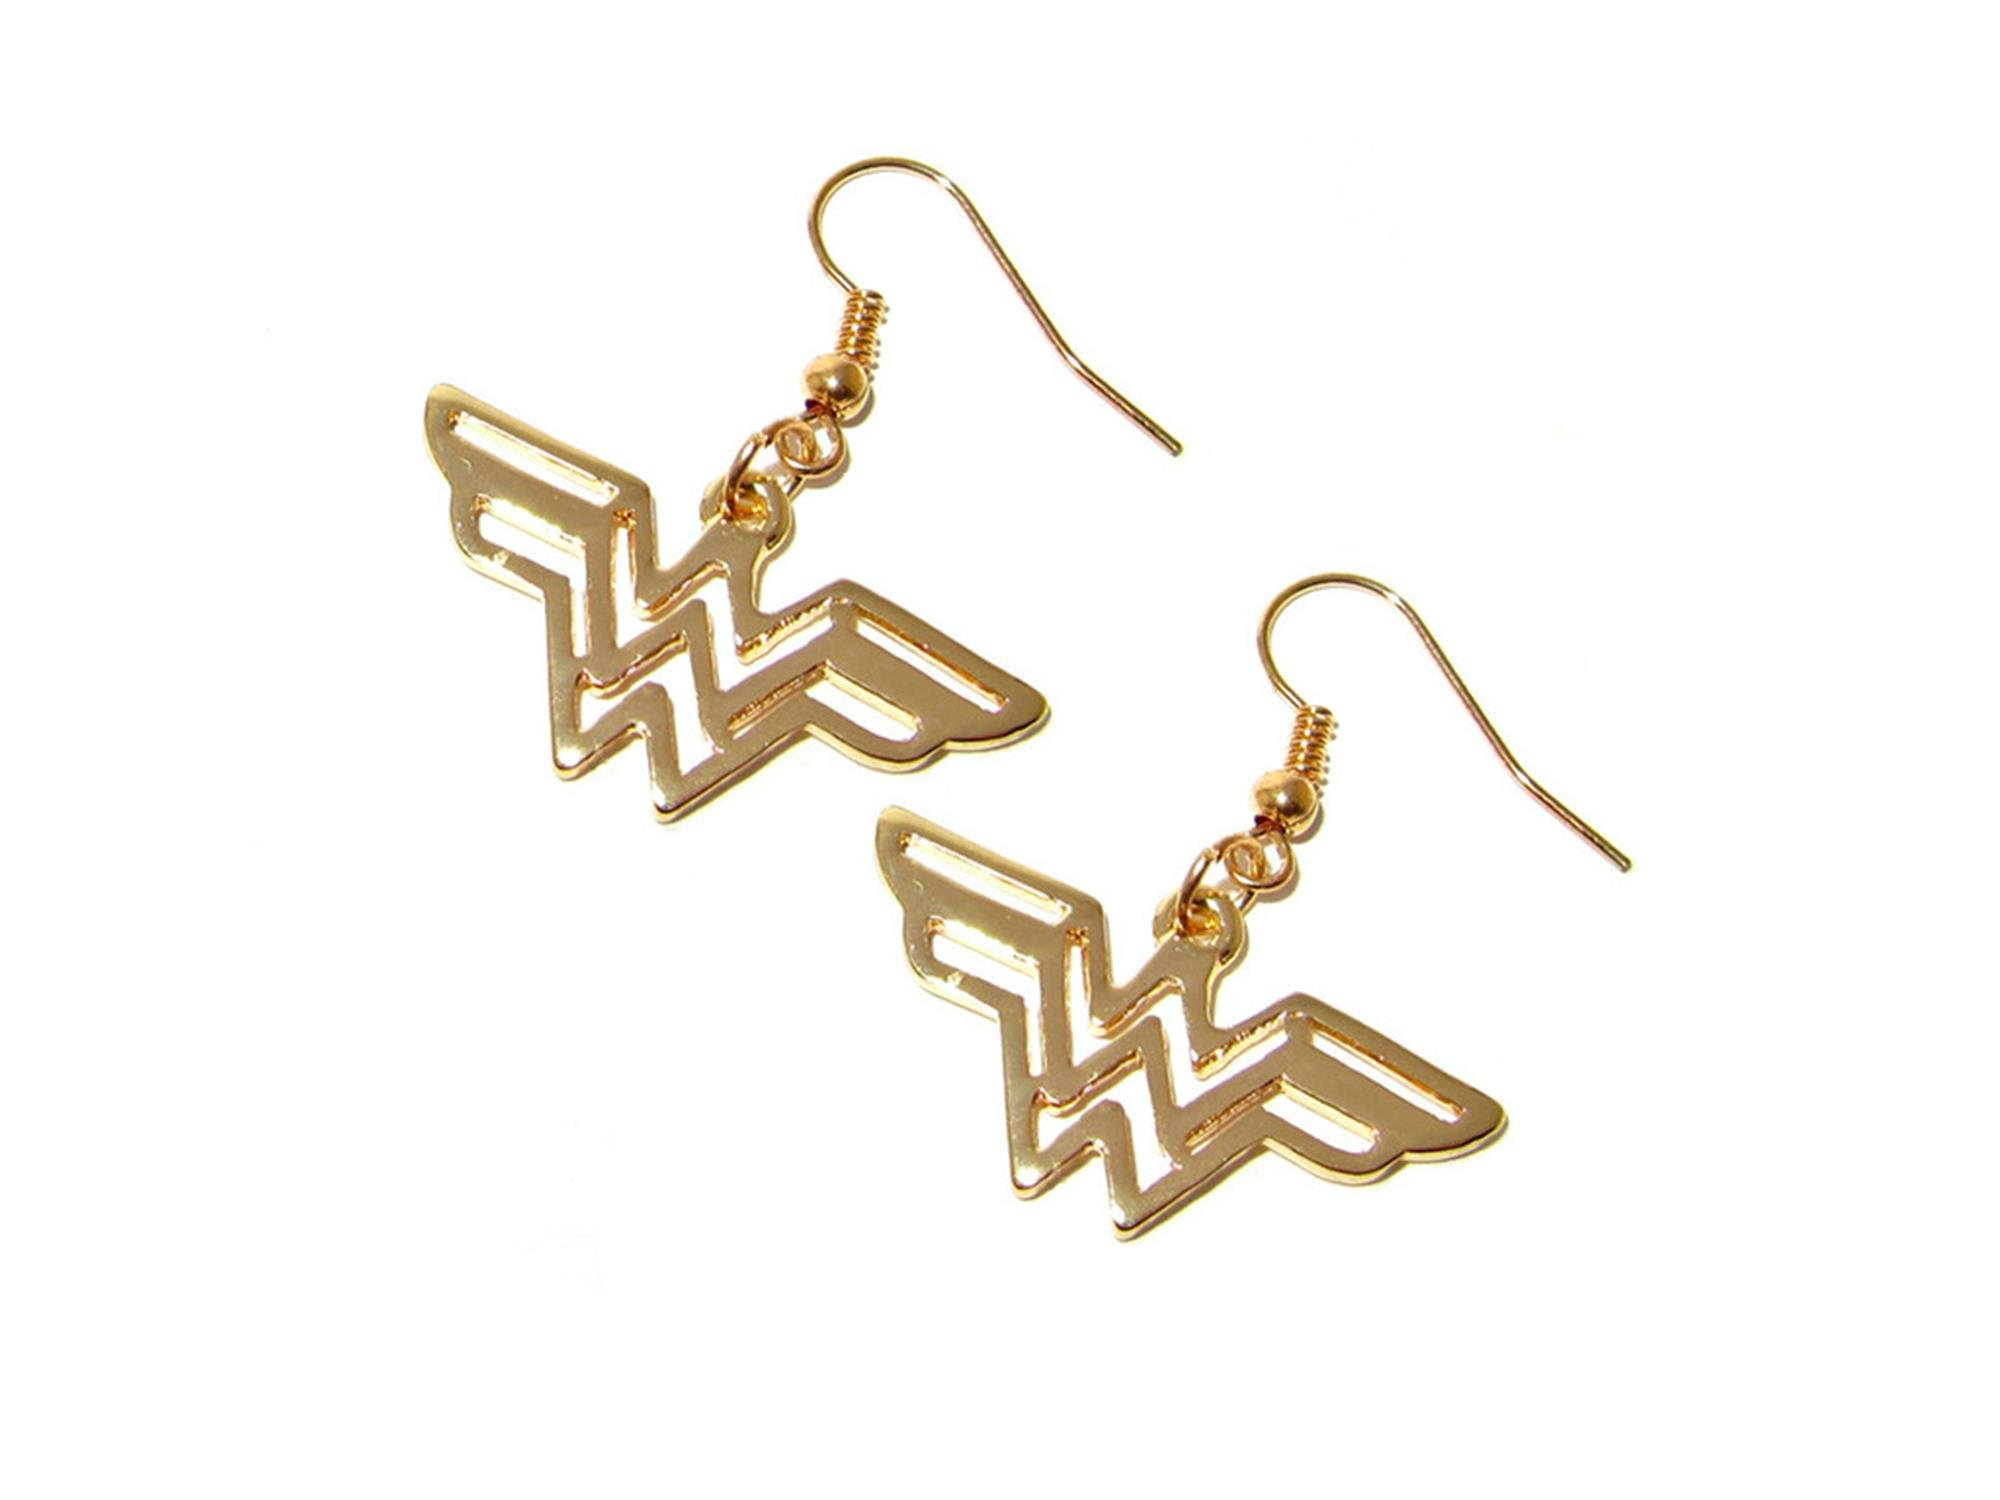 Outlander DC Wonder Woman Gold Logo Earring Dangles In Gift Box From